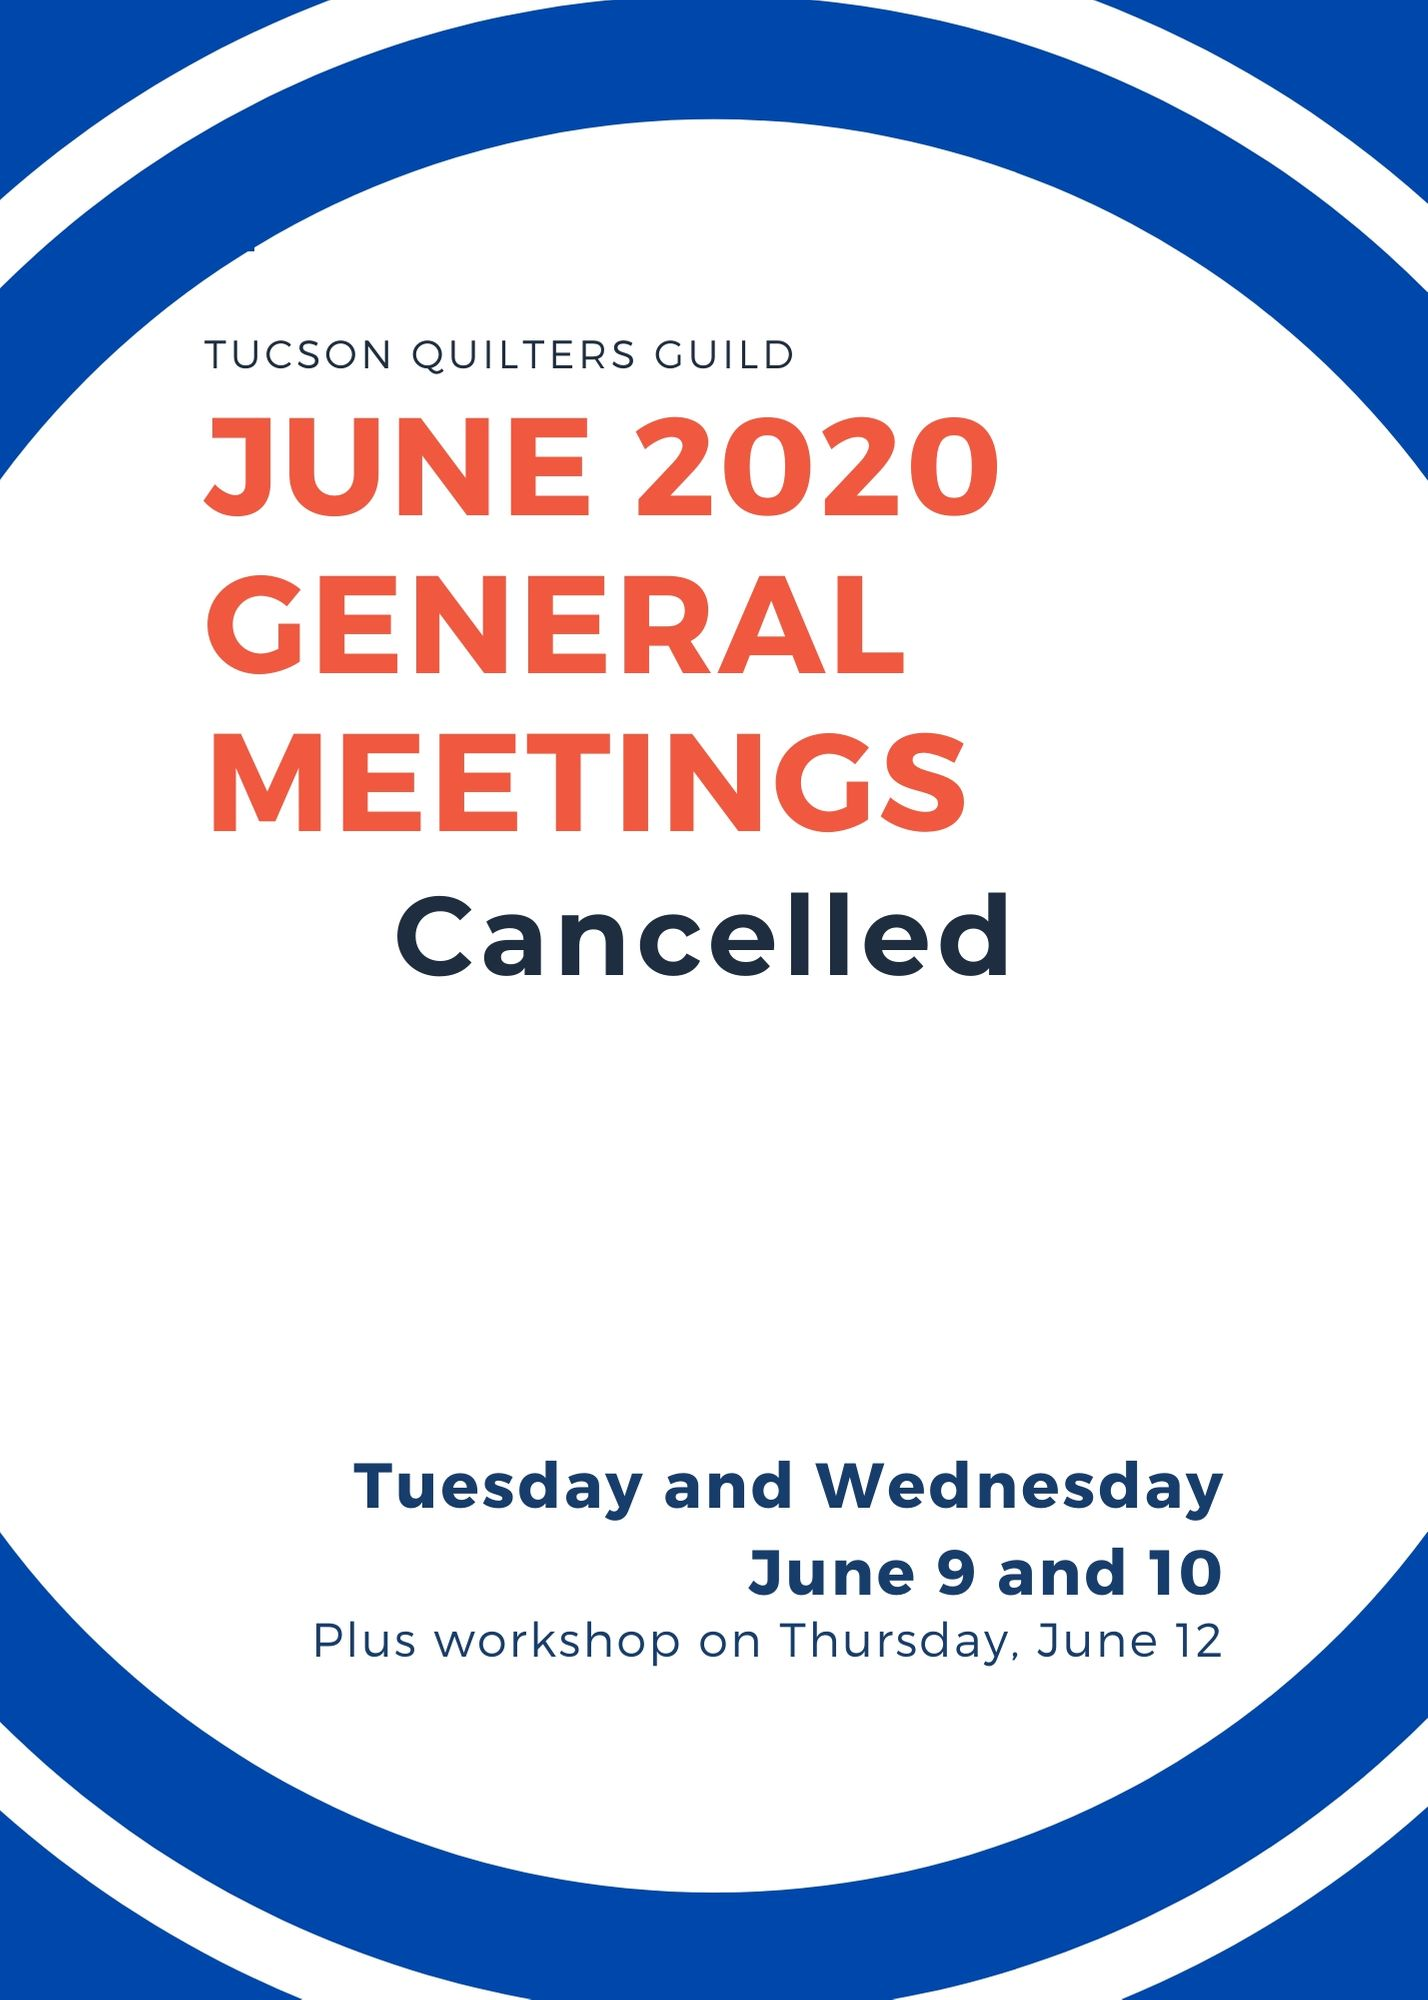 June meetings cancelled